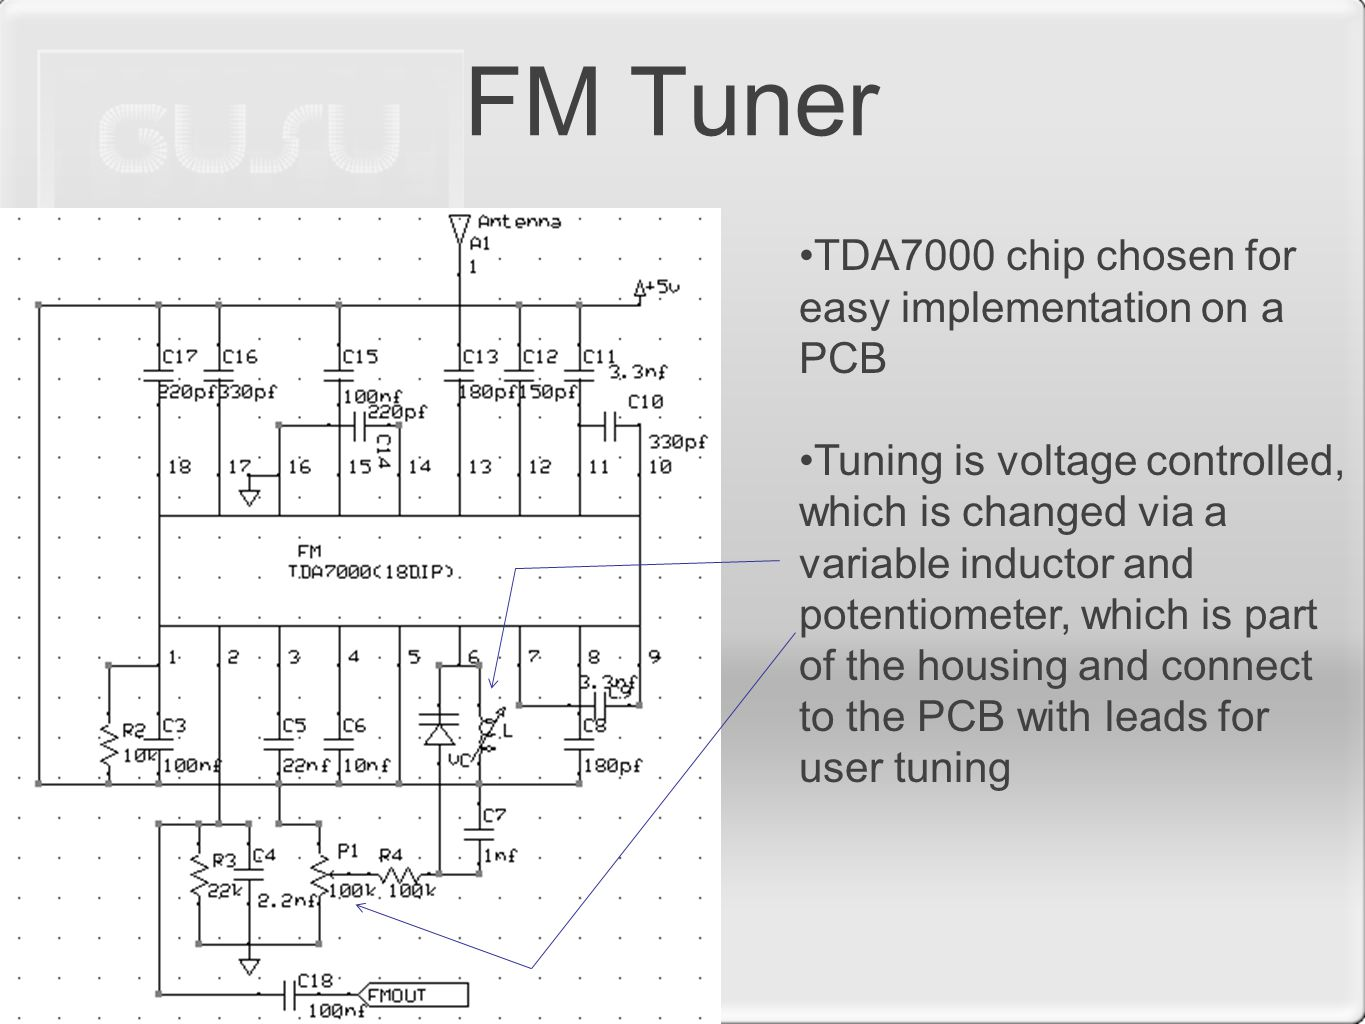 FM Tuner TDA7000 chip chosen for easy implementation on a PCB Tuning is voltage controlled, which is changed via a variable inductor and potentiometer, which is part of the housing and connect to the PCB with leads for user tuning